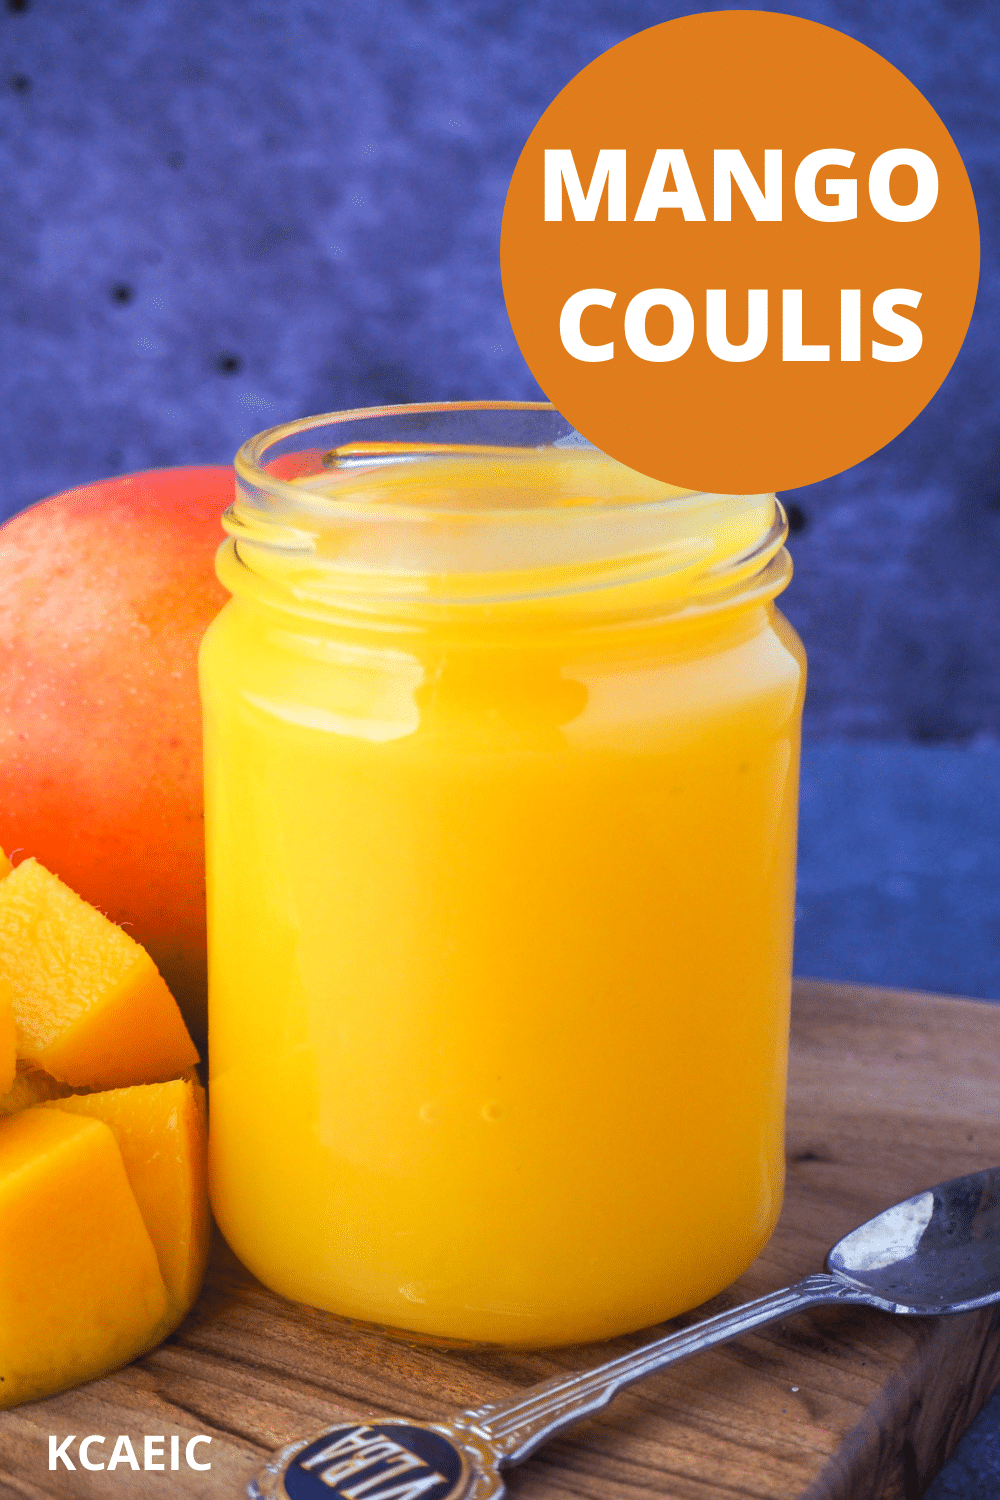 Open glass jar of mango coulis with fresh mango and a vintage spoon on the side, with text overlay, mango coulis and KCAEIC.